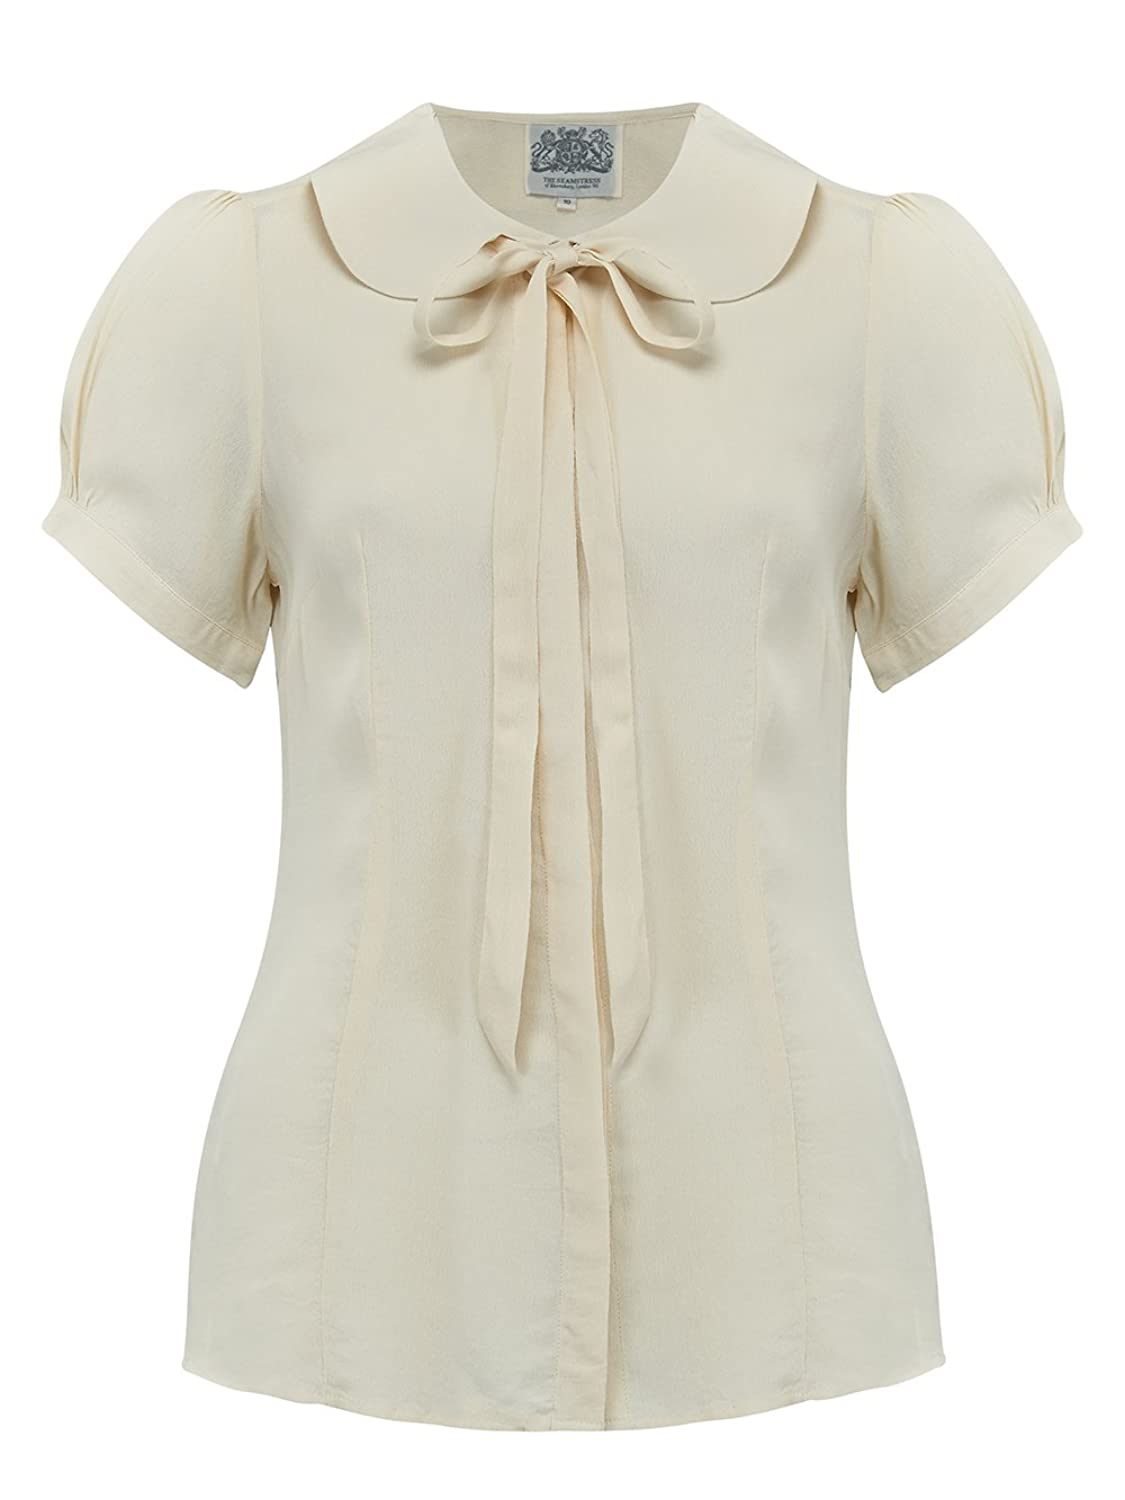 1940s Blouses and Tops 1940s Authentic Vintage Tie-Blouse in Crepe De Chine by The Seamstress of Bloomsbury £39.00 AT vintagedancer.com